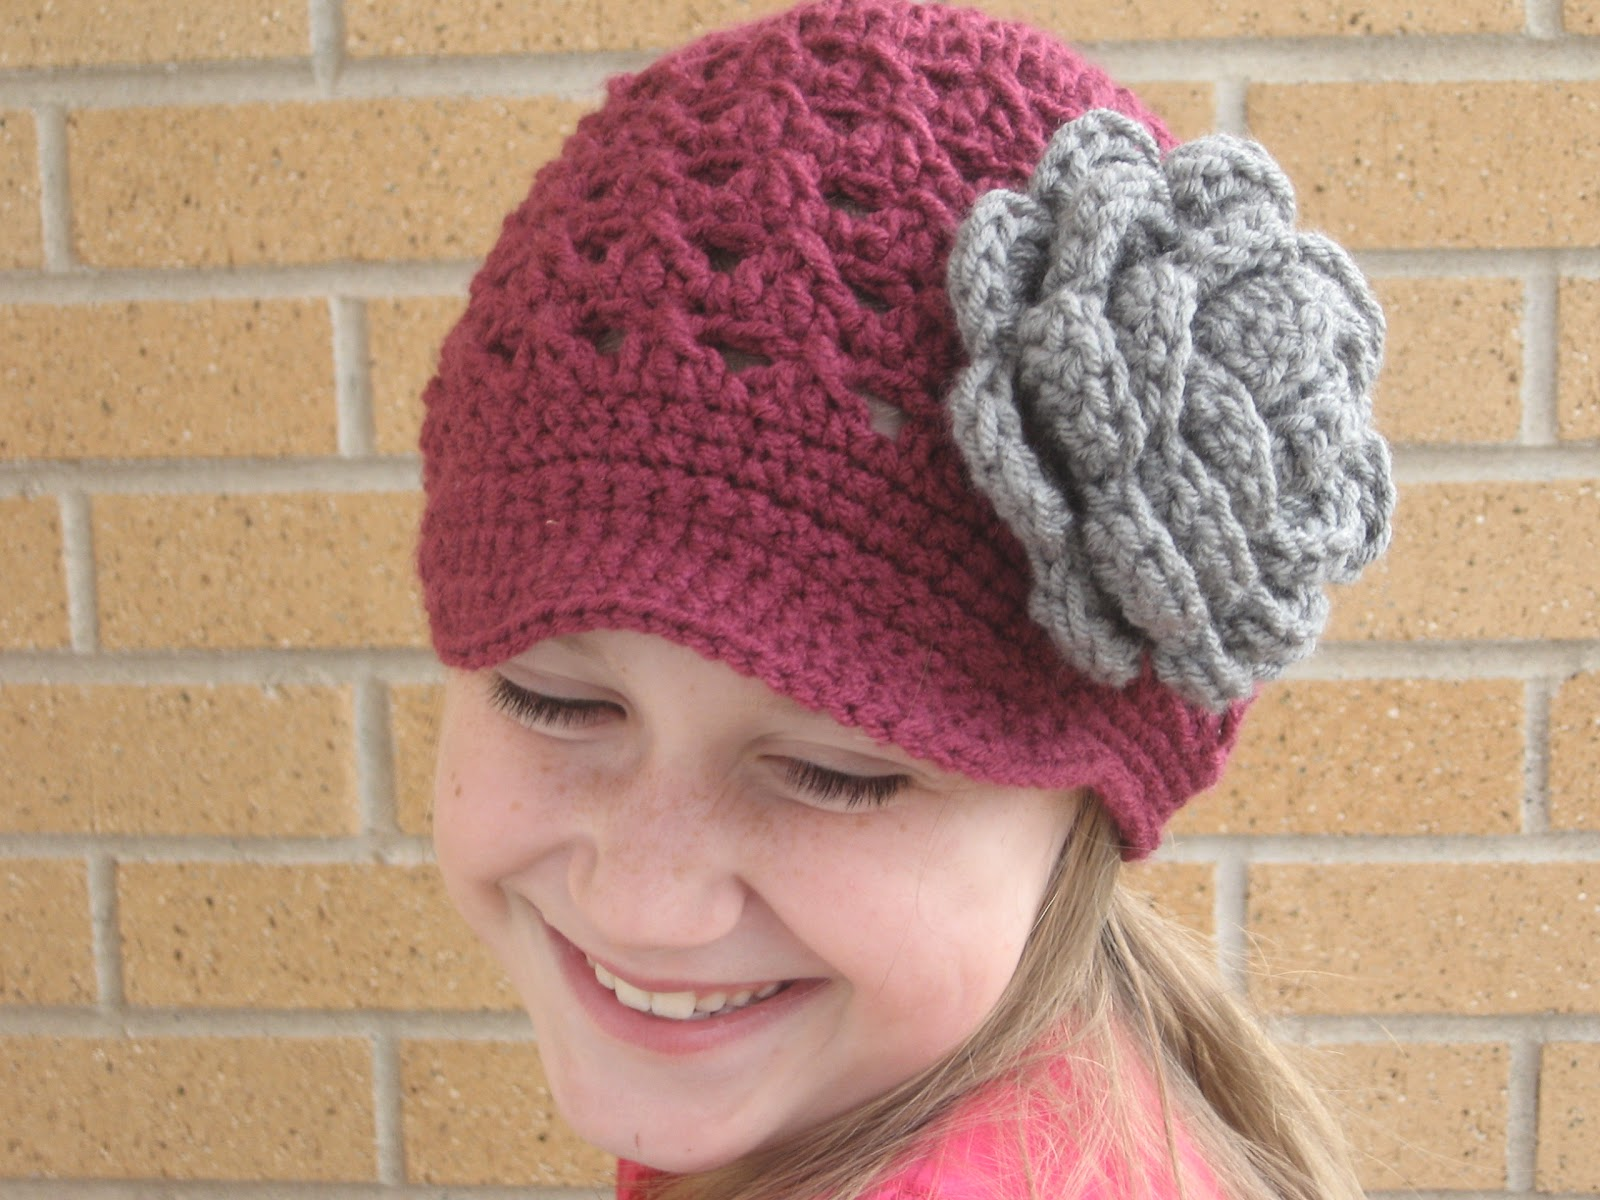 Free crochet patterns newsboy hat for babies dancox for crochet newsboy hat pattern free baby bankloansurffo Images